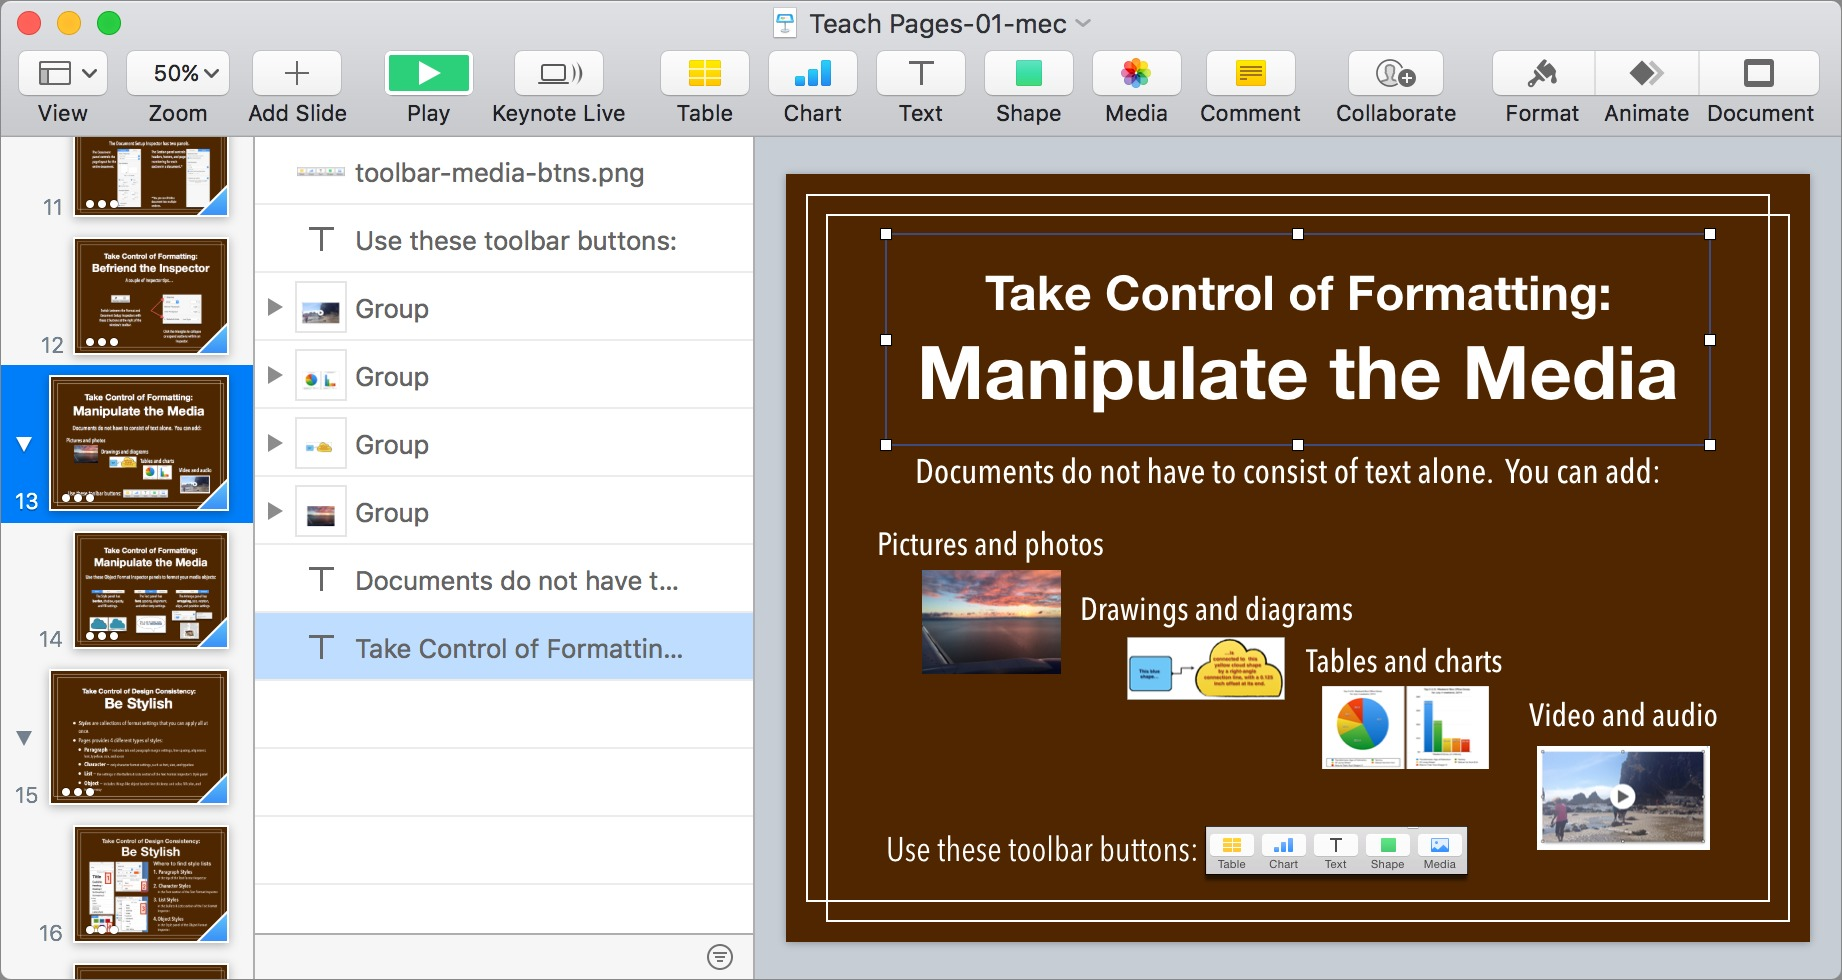 iWork Updates Bring New and Returning Features - TidBITS